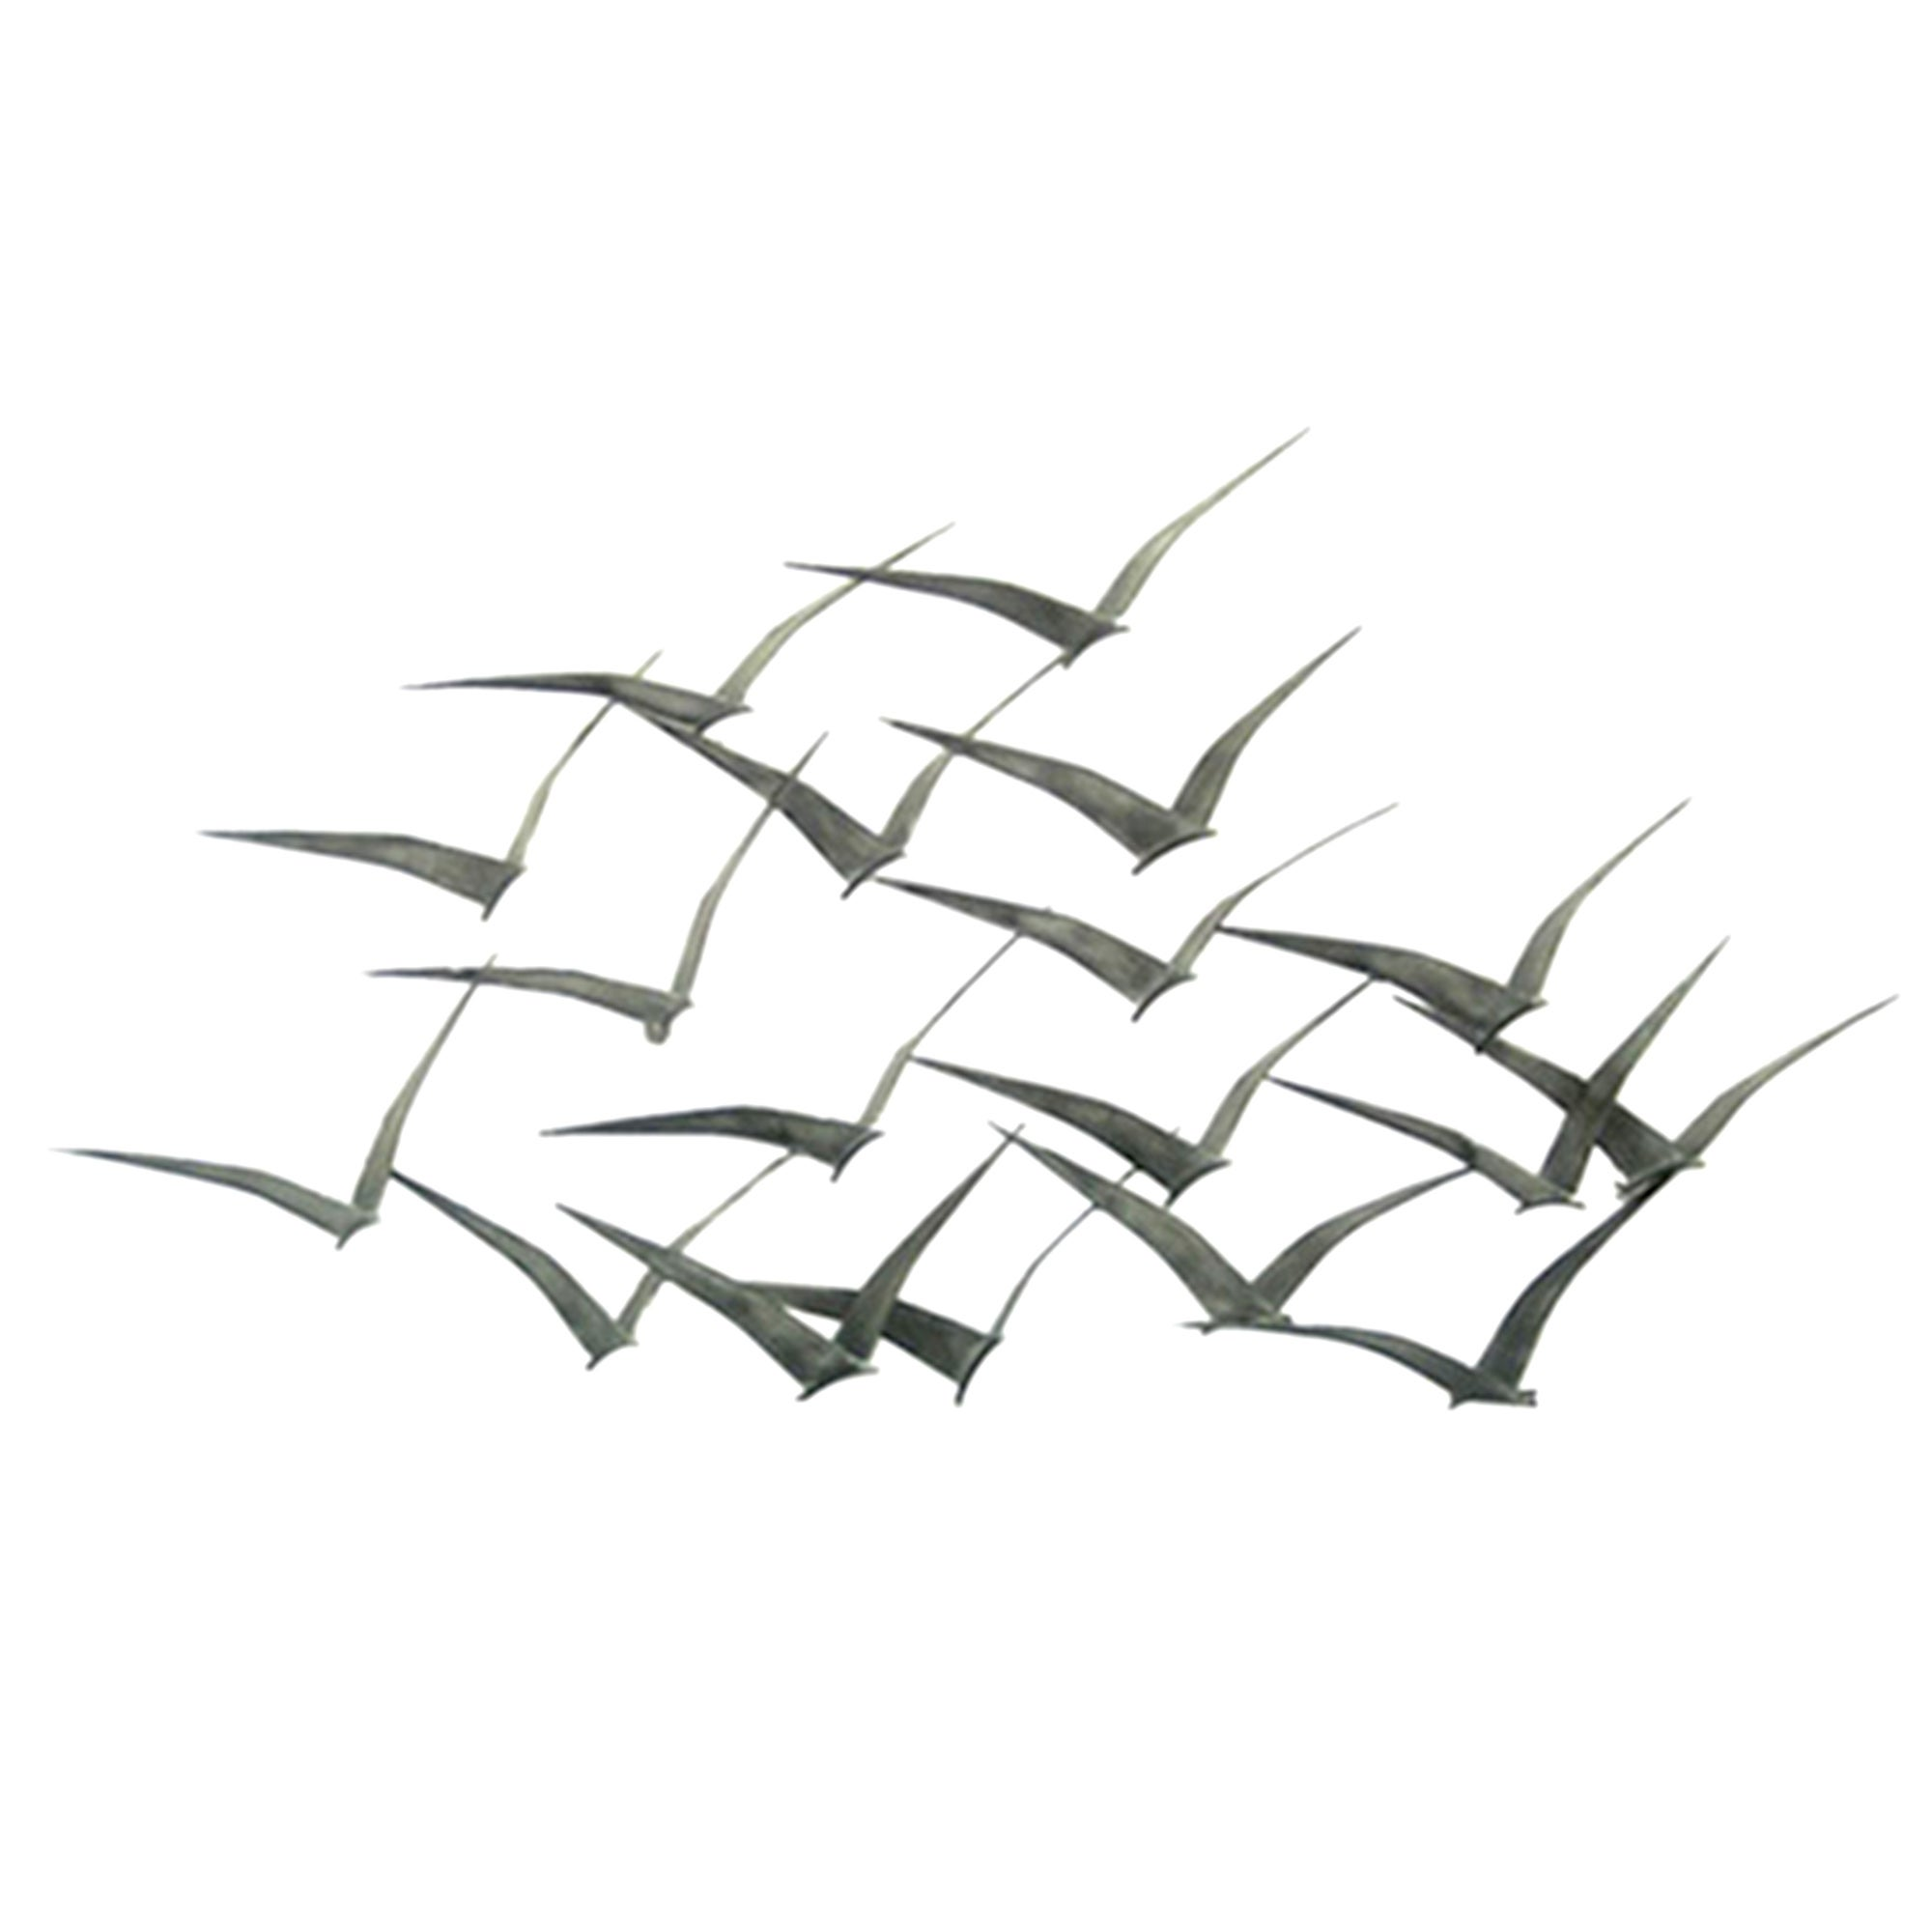 Flock of Metal Flying Birds Wall Art